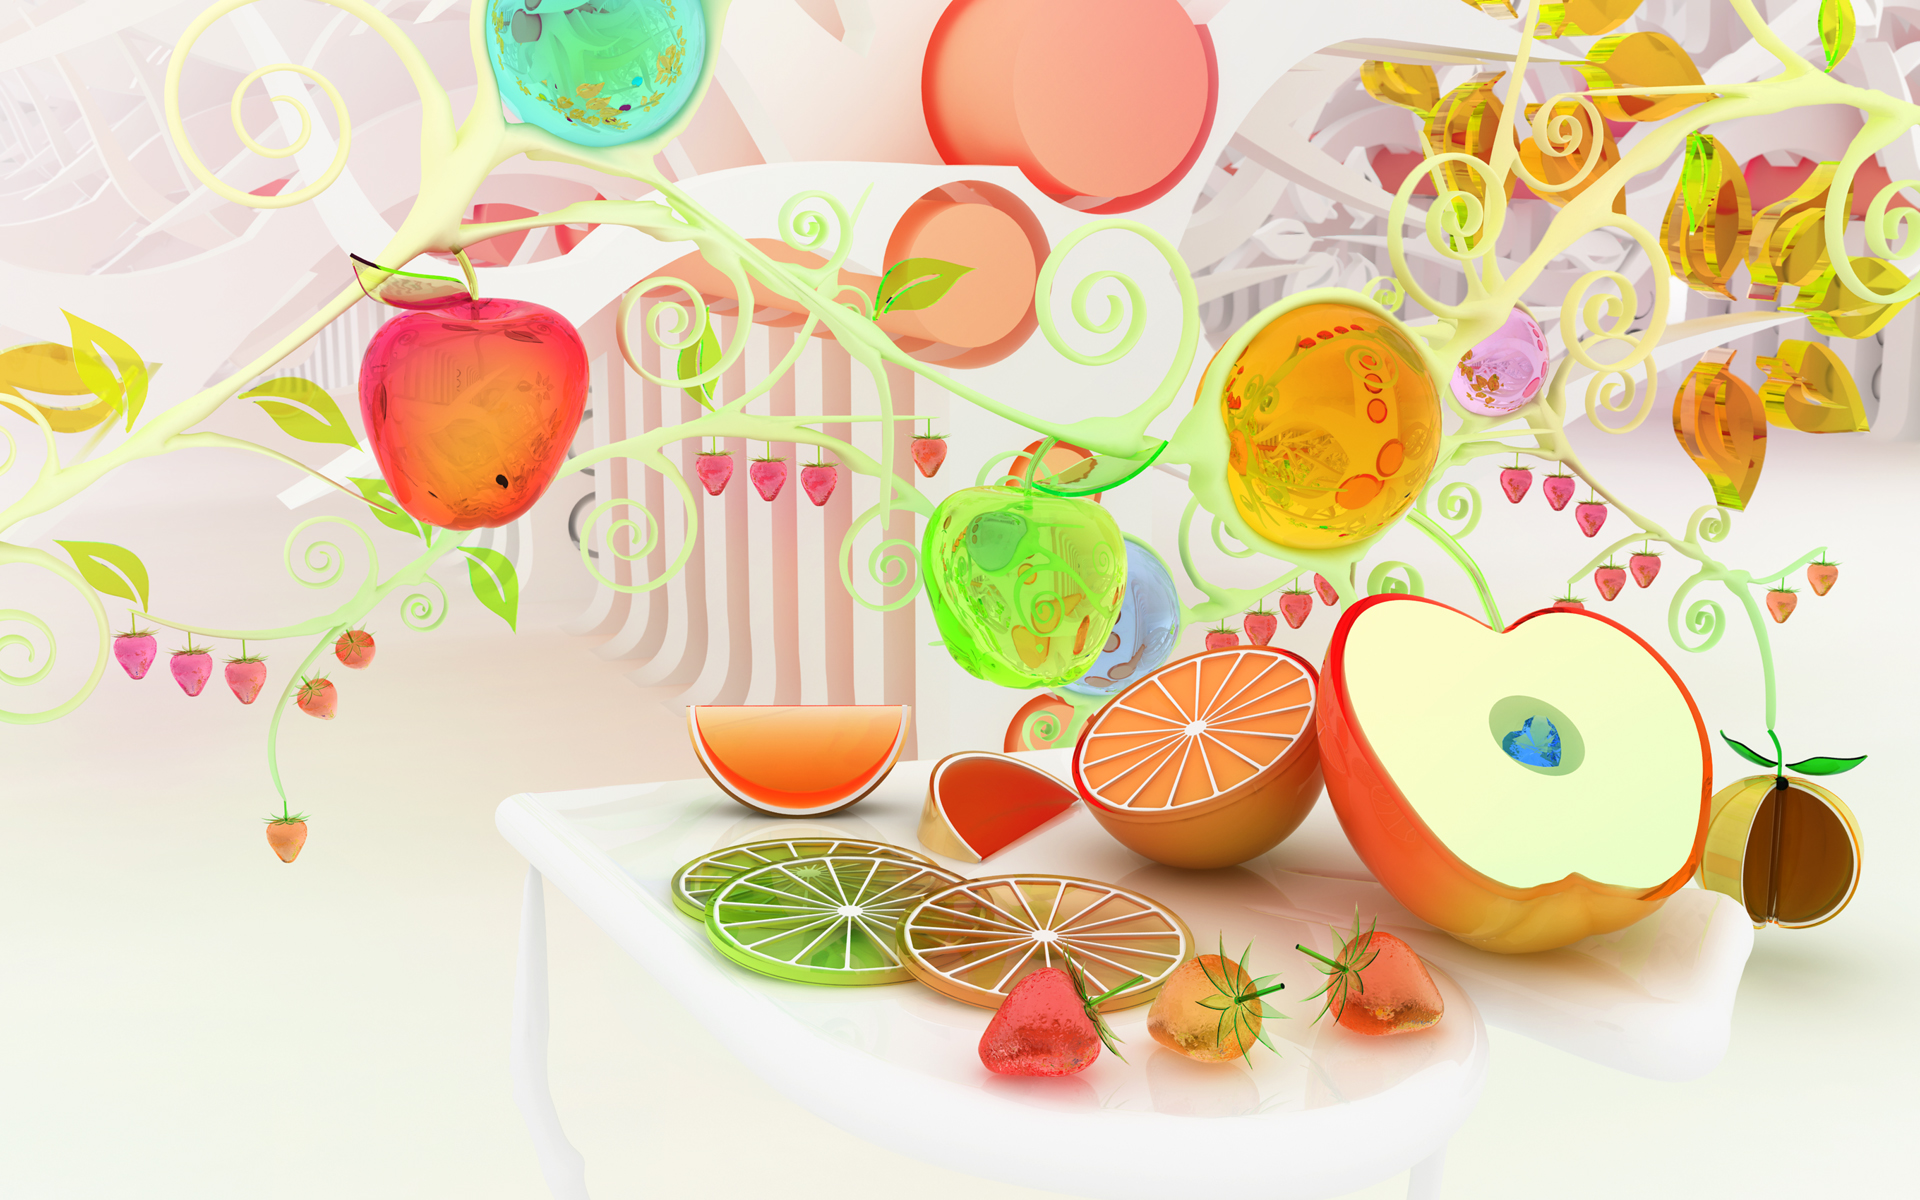 Food Art Wallpaper